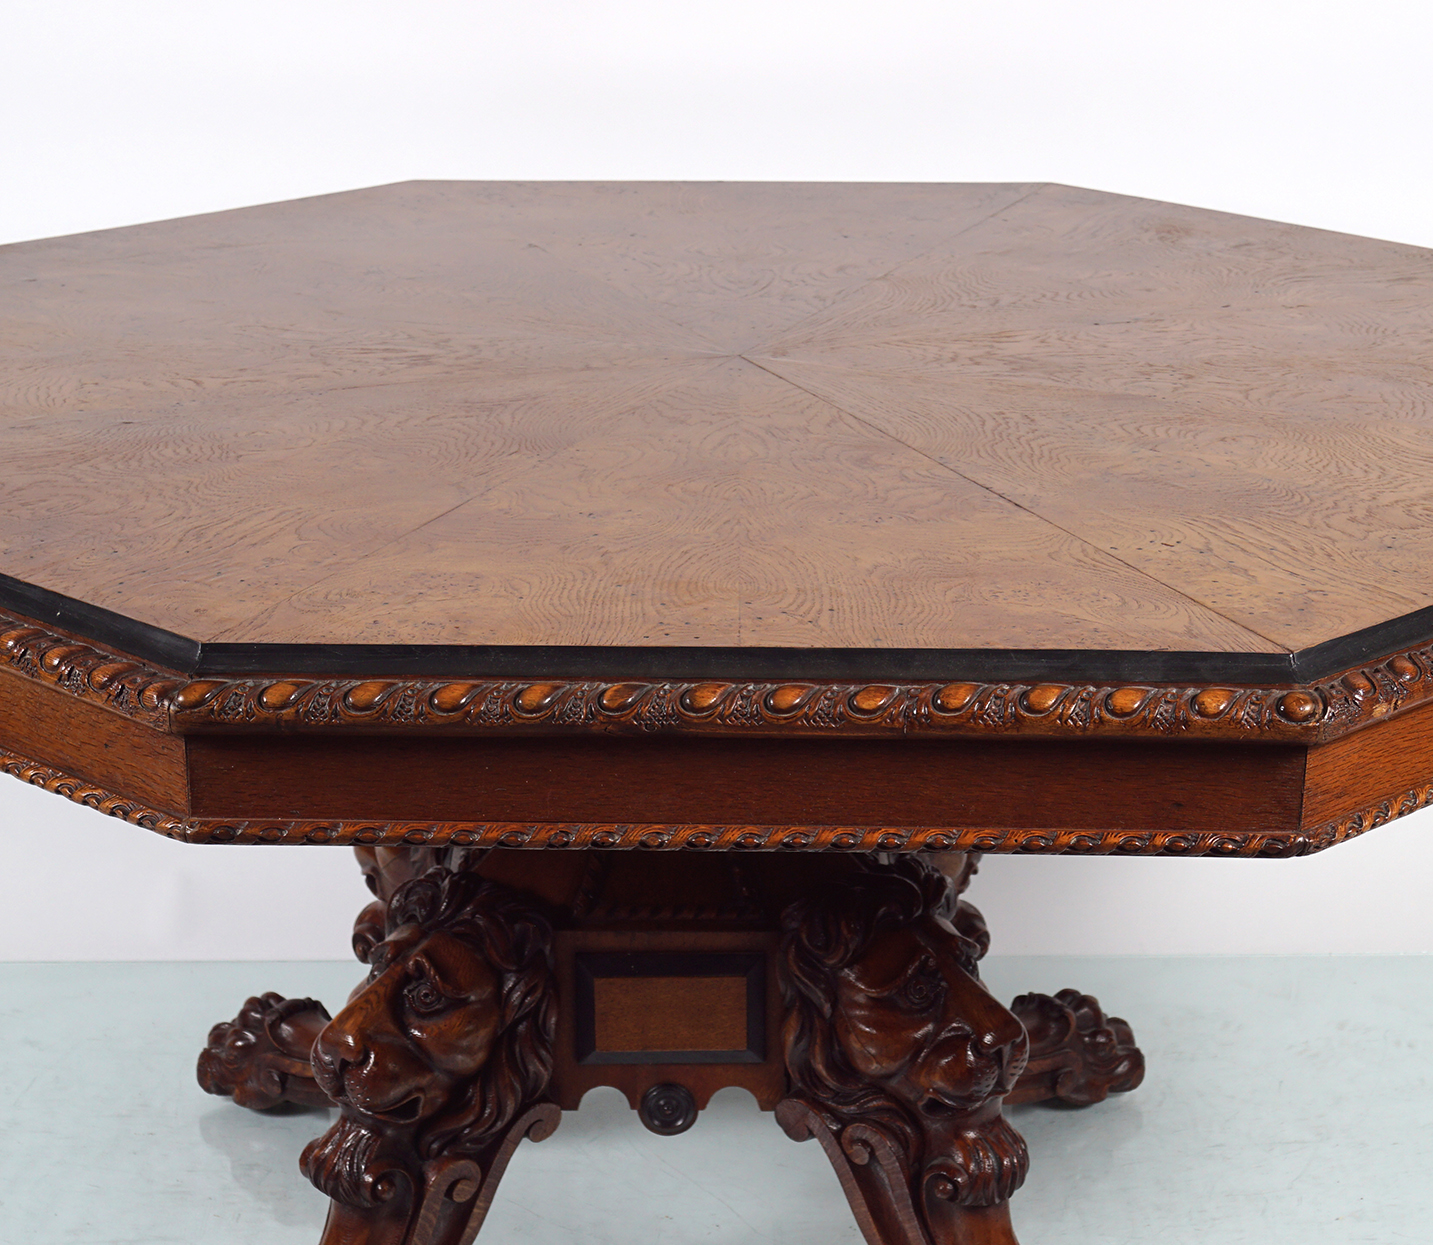 IMPORTANT WILLIAM IV OAK DINING TABLE - Image 2 of 7